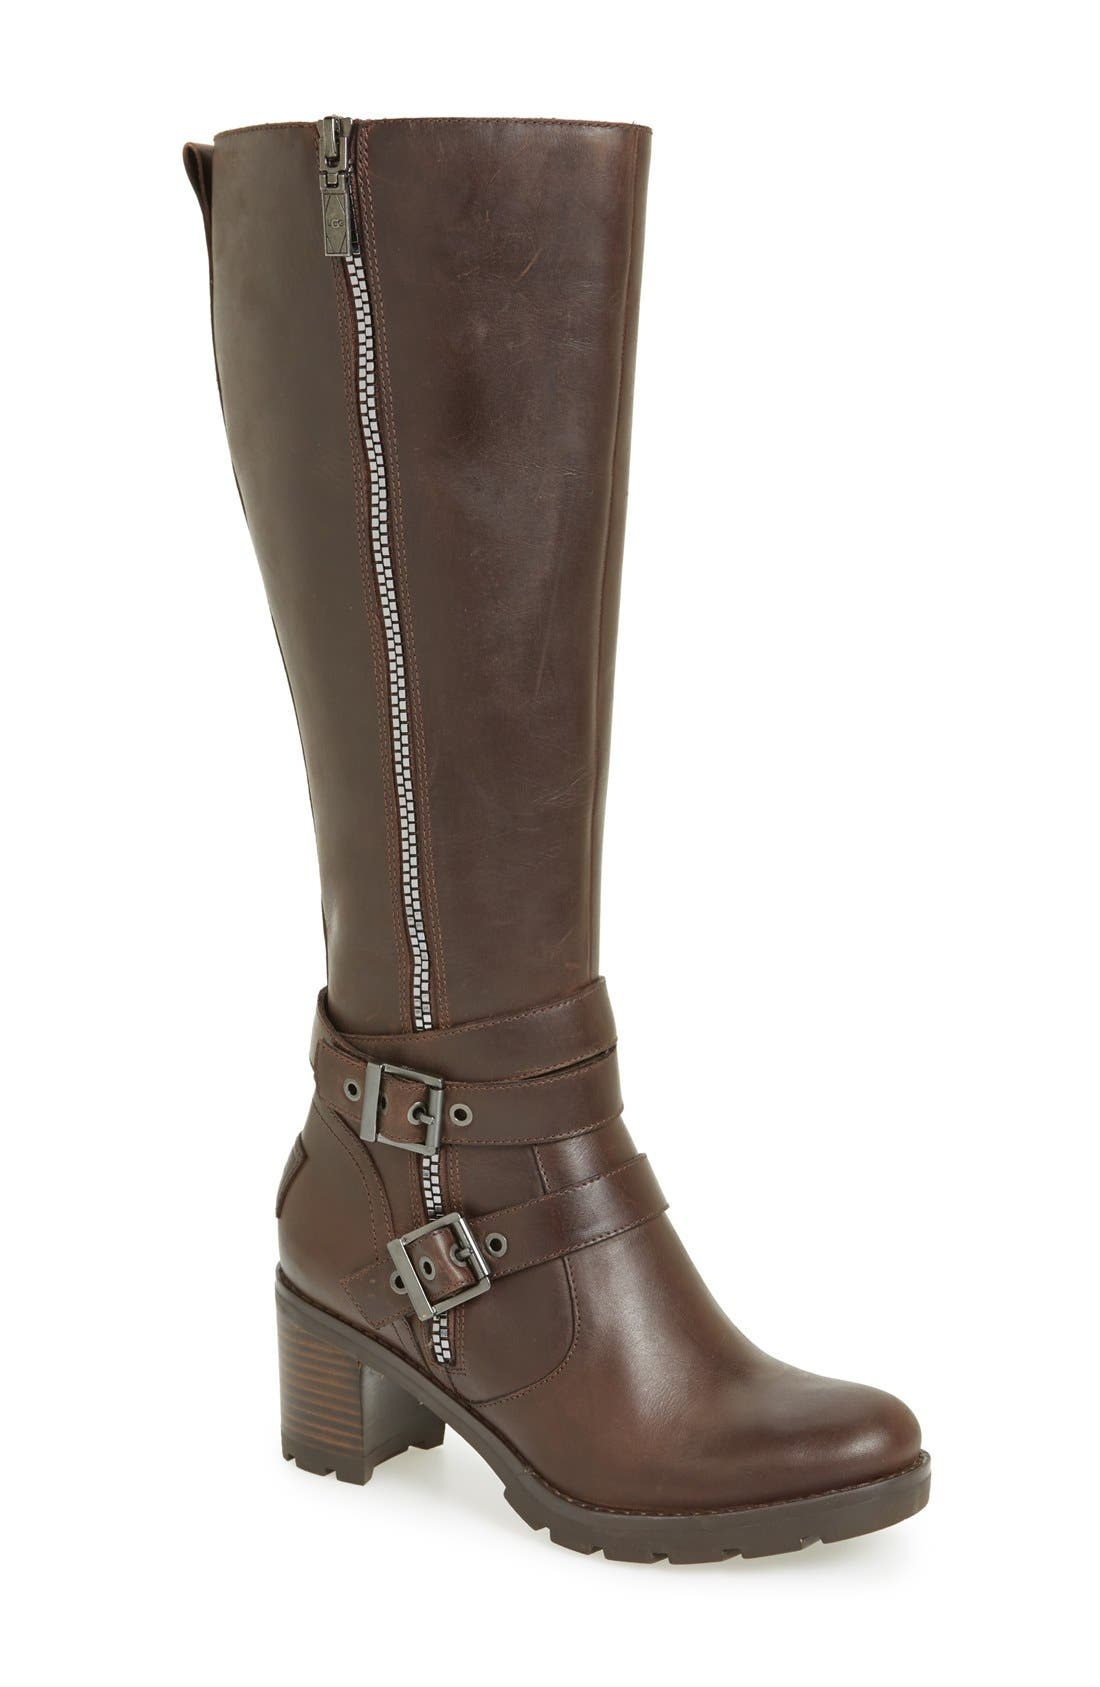 Alternate Image 1 Selected - UGG® 'Lana' Water Resistant Genuine Shearling Lined Leather Boot (Women)